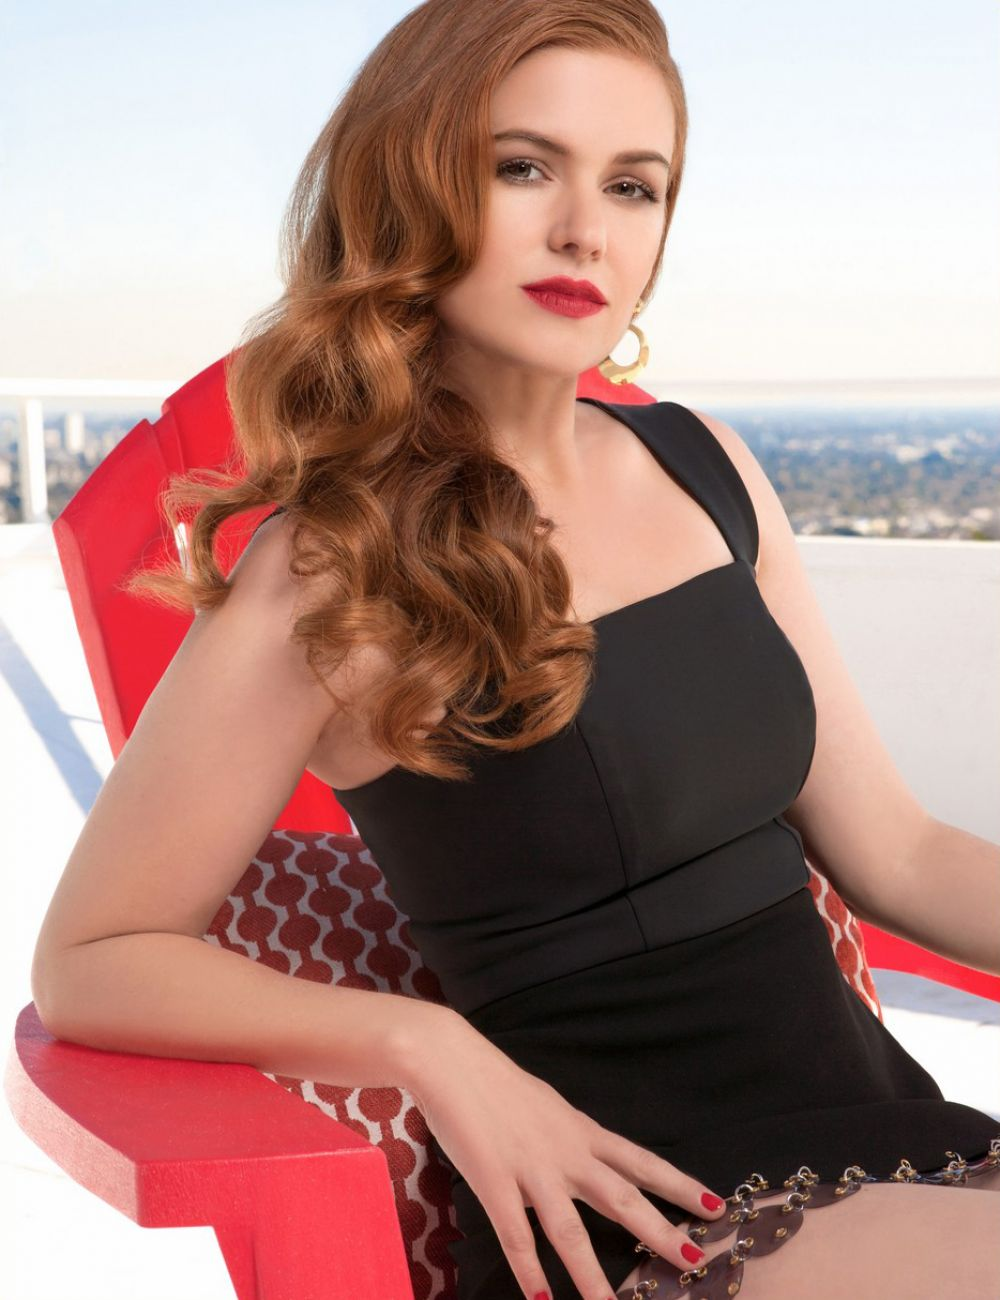 ISLA FISHER in VVV Magazine, Spring/Summer 2016 Issue